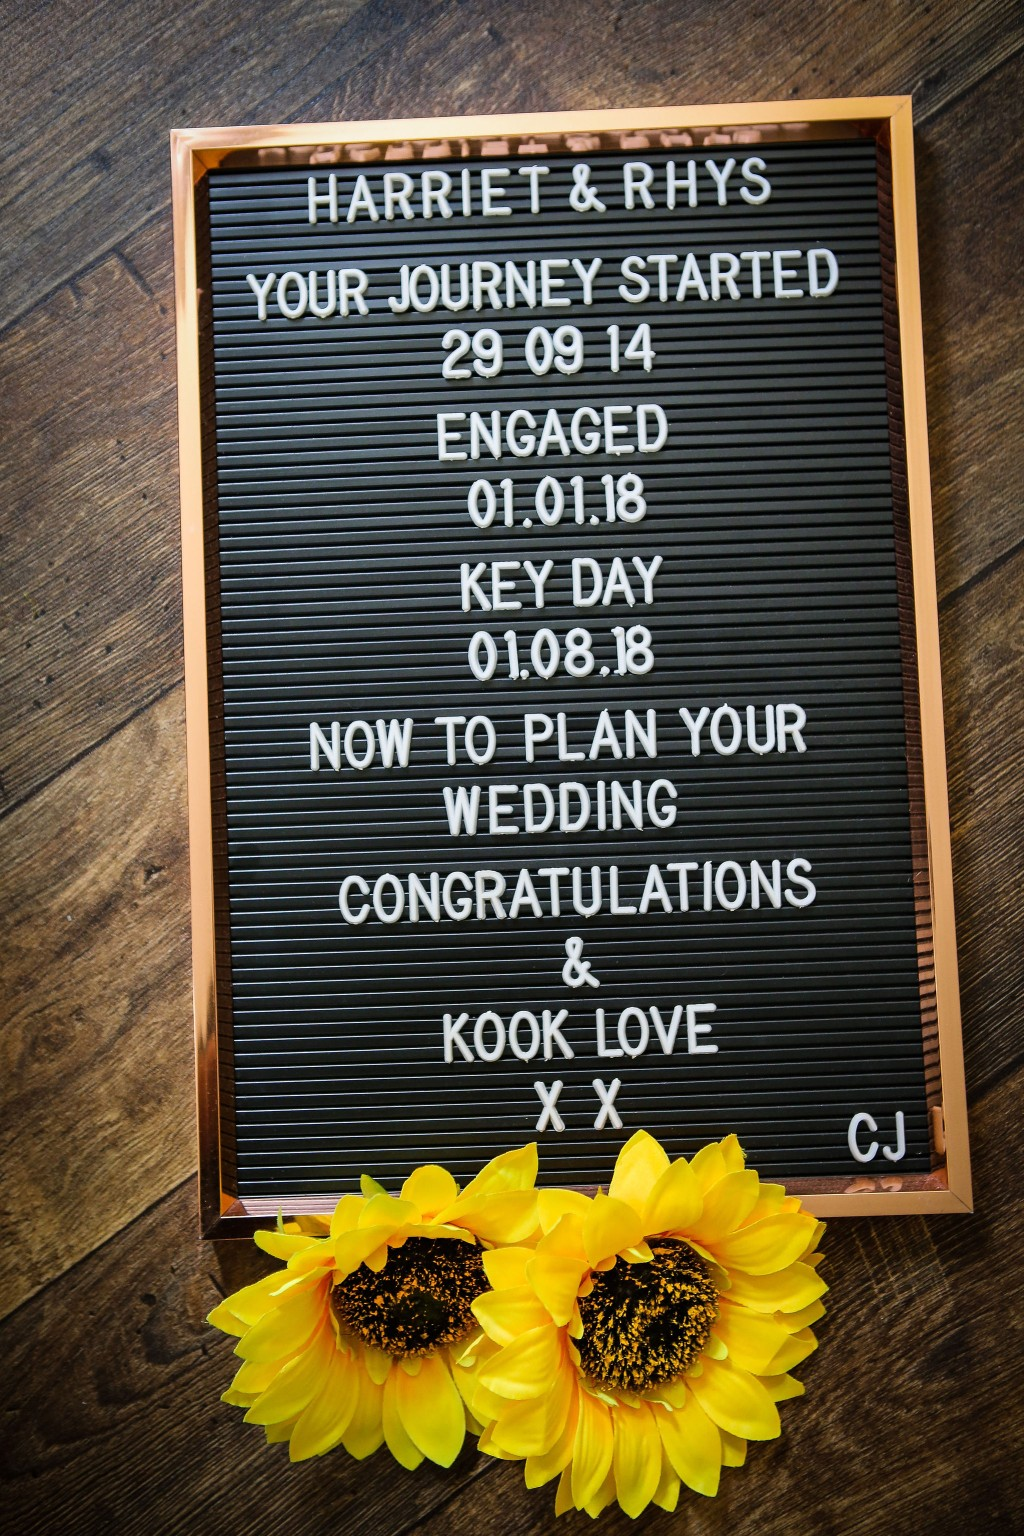 Harriet&Rhys Wedding - Magical sunflower wedding - sunflower key events timeline